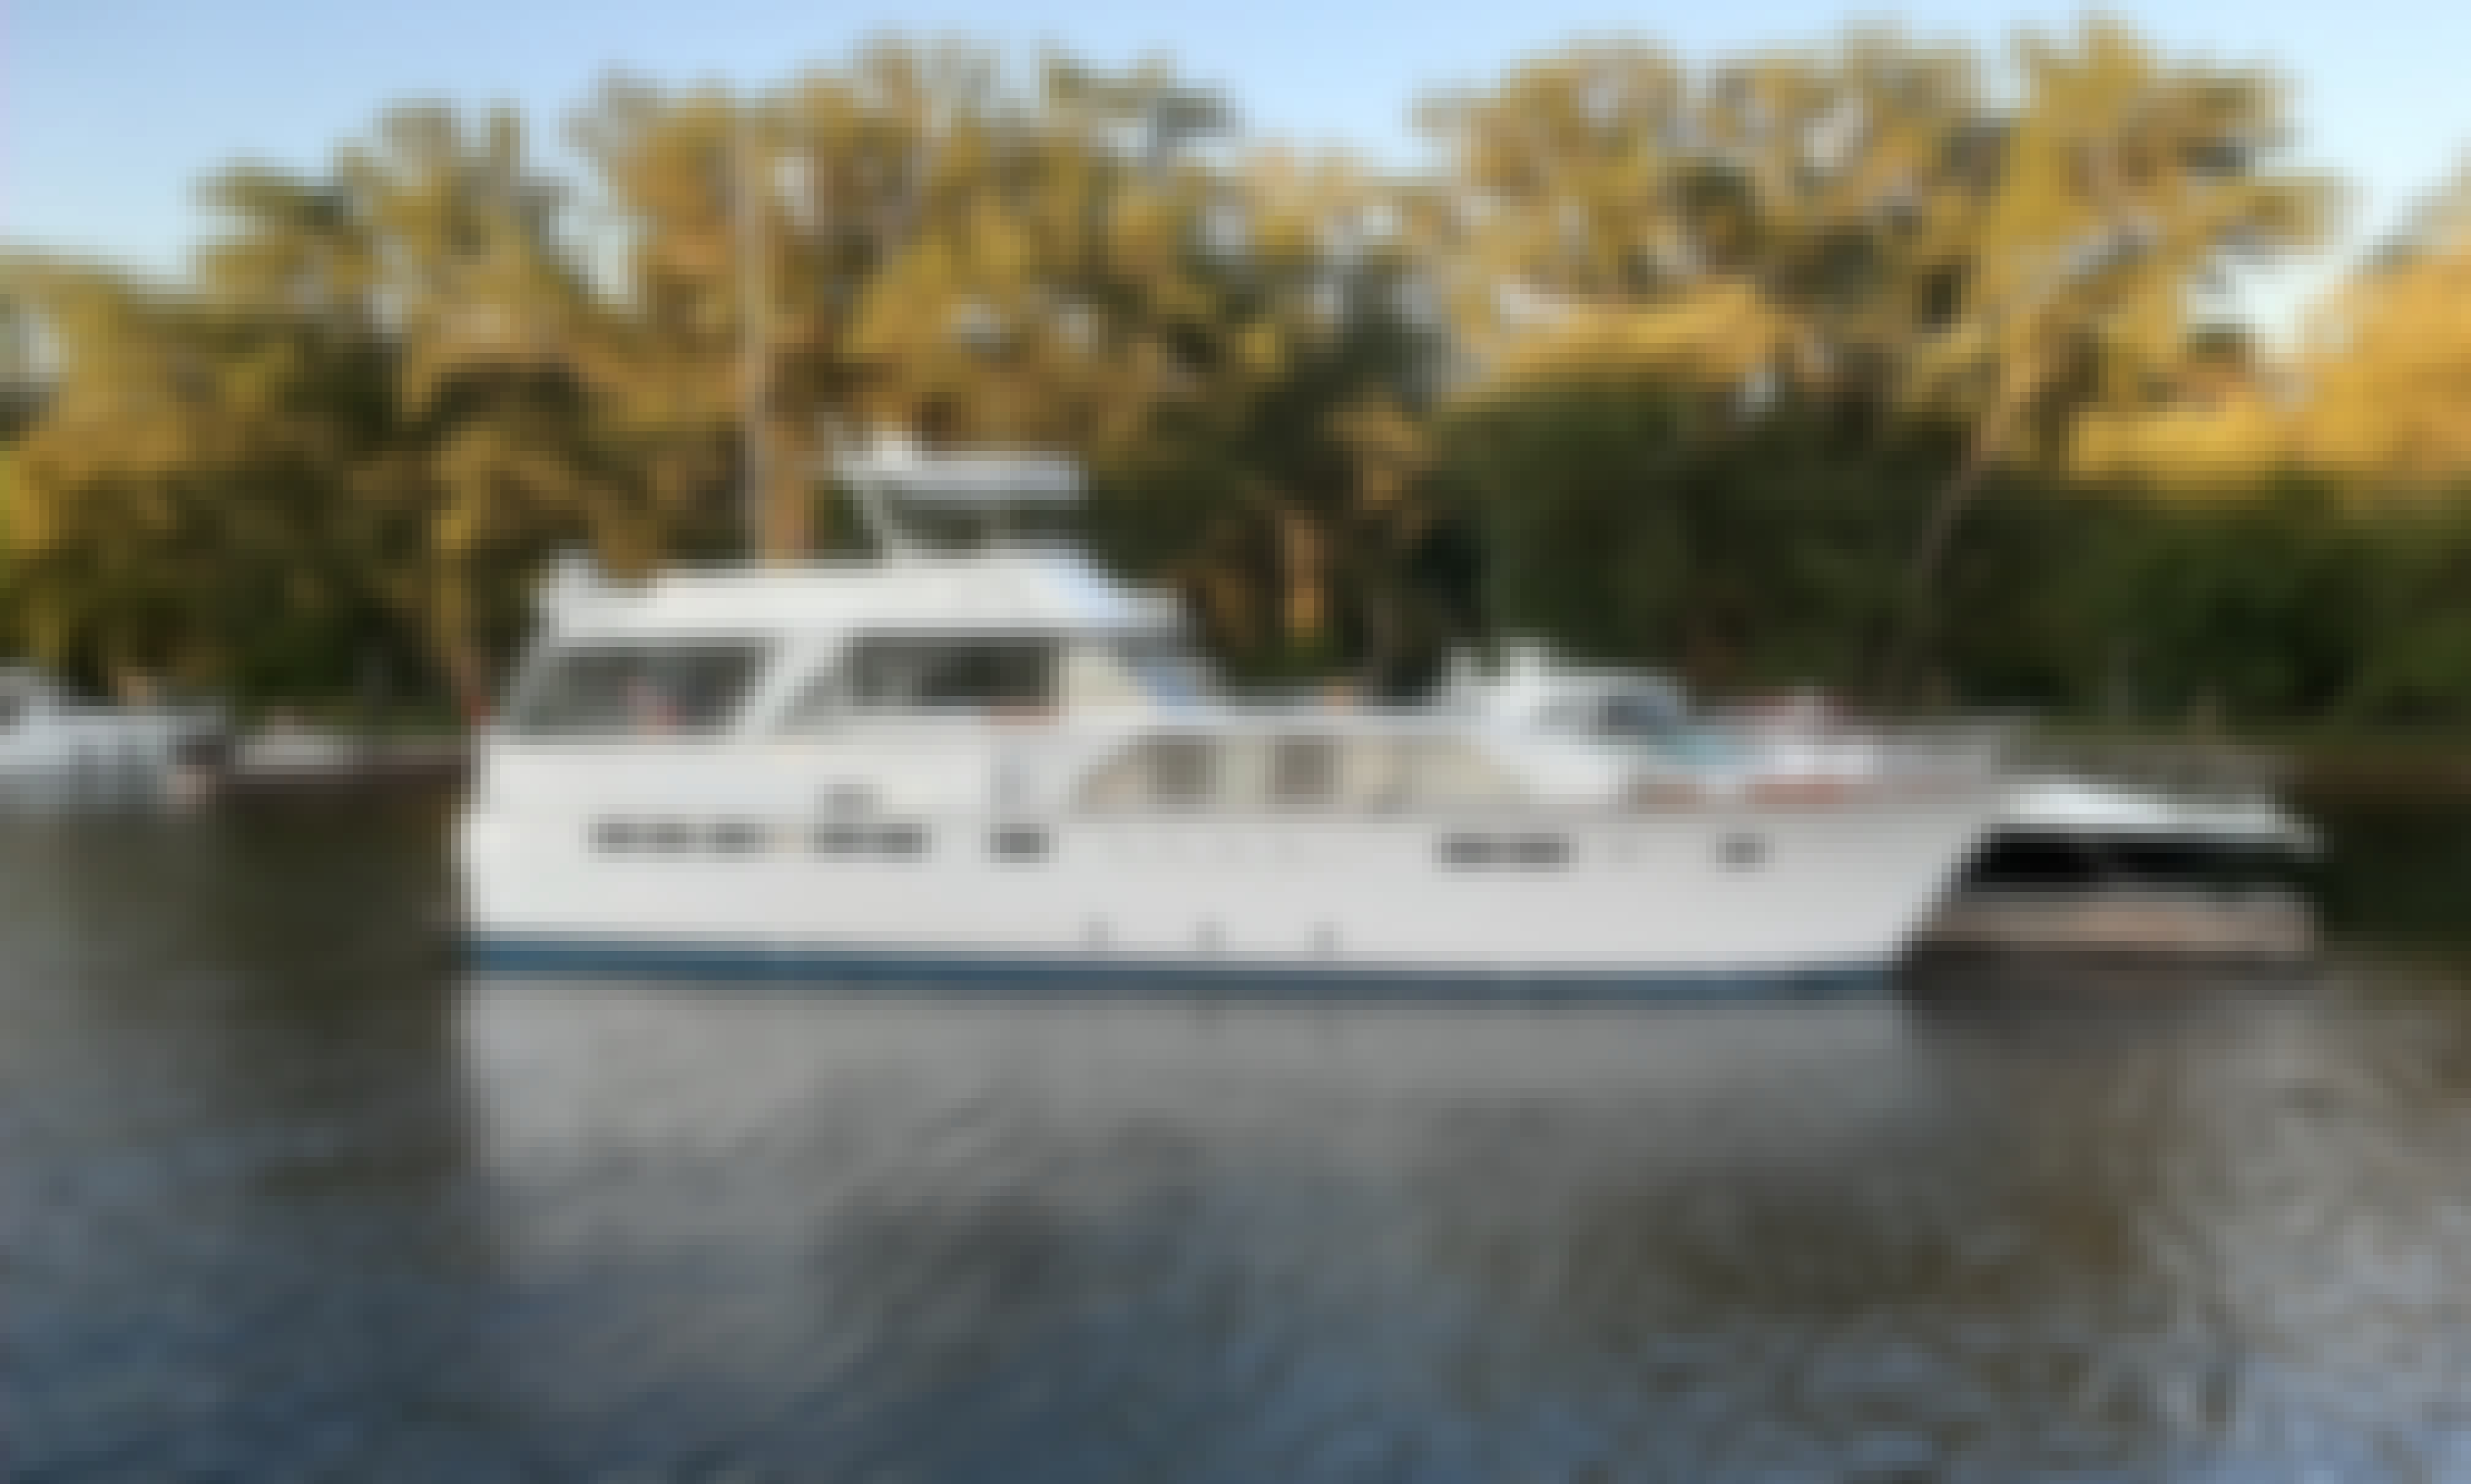 Chris Craft 40' Captain included boat ride with friends. Fall prices and deals